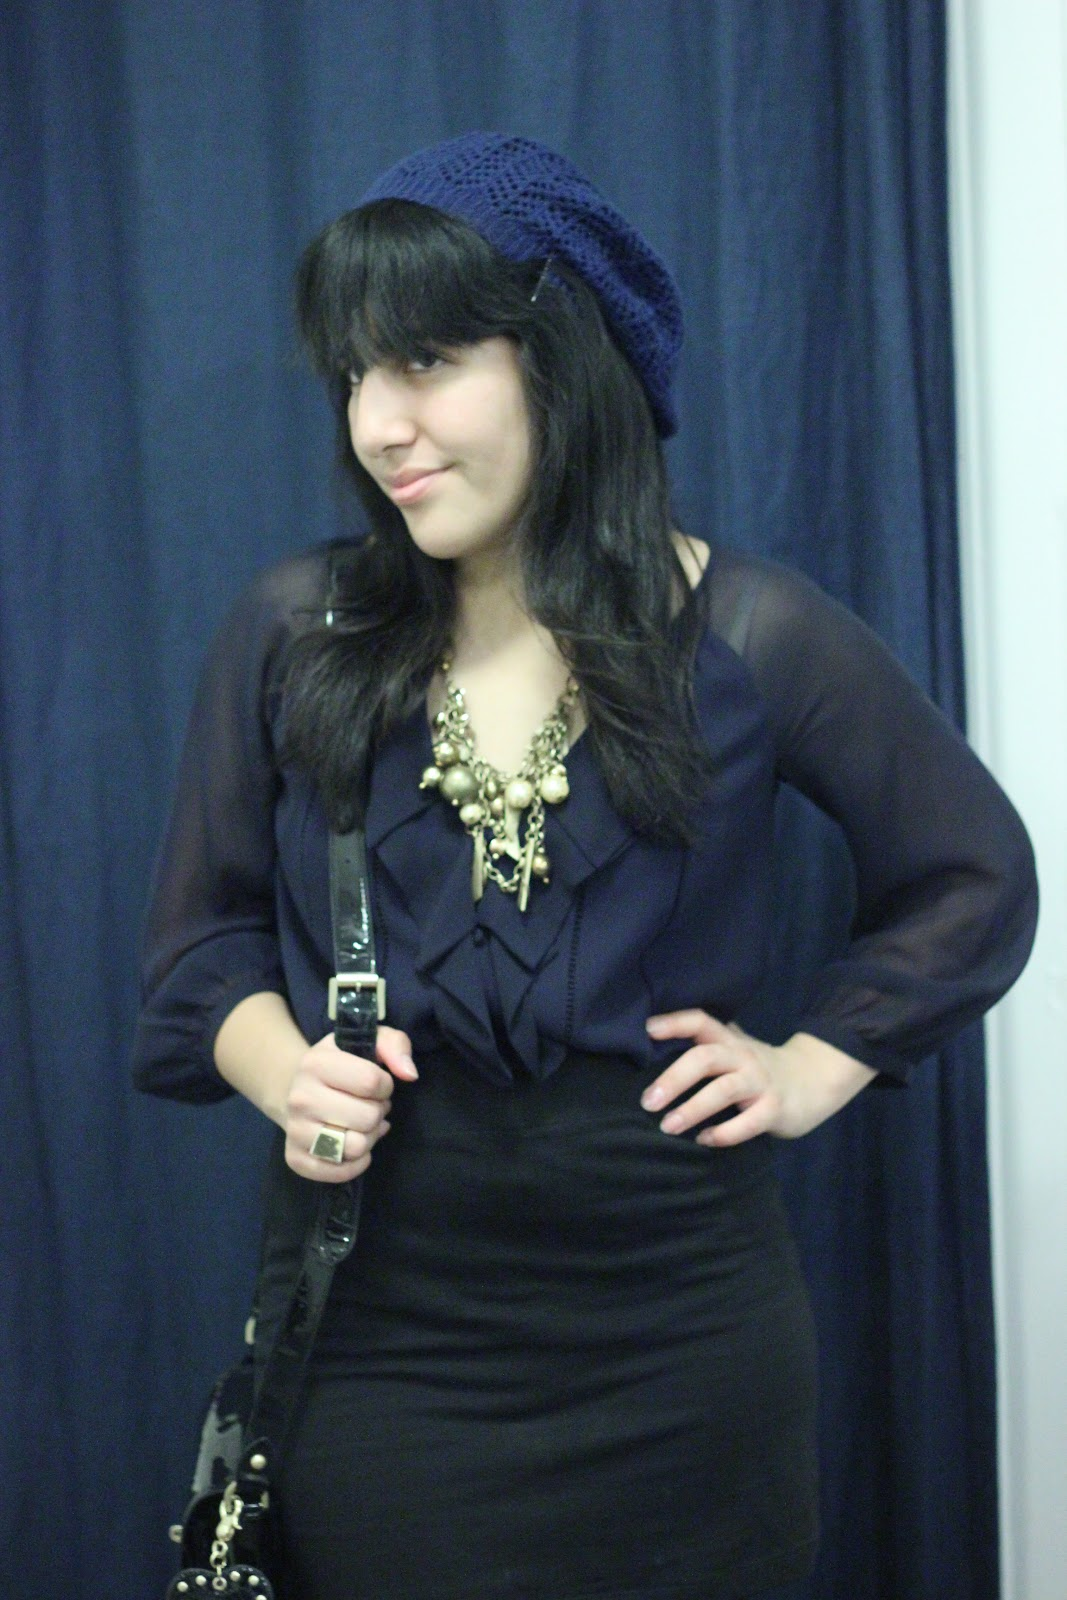 Navy and Black Date Nite Look